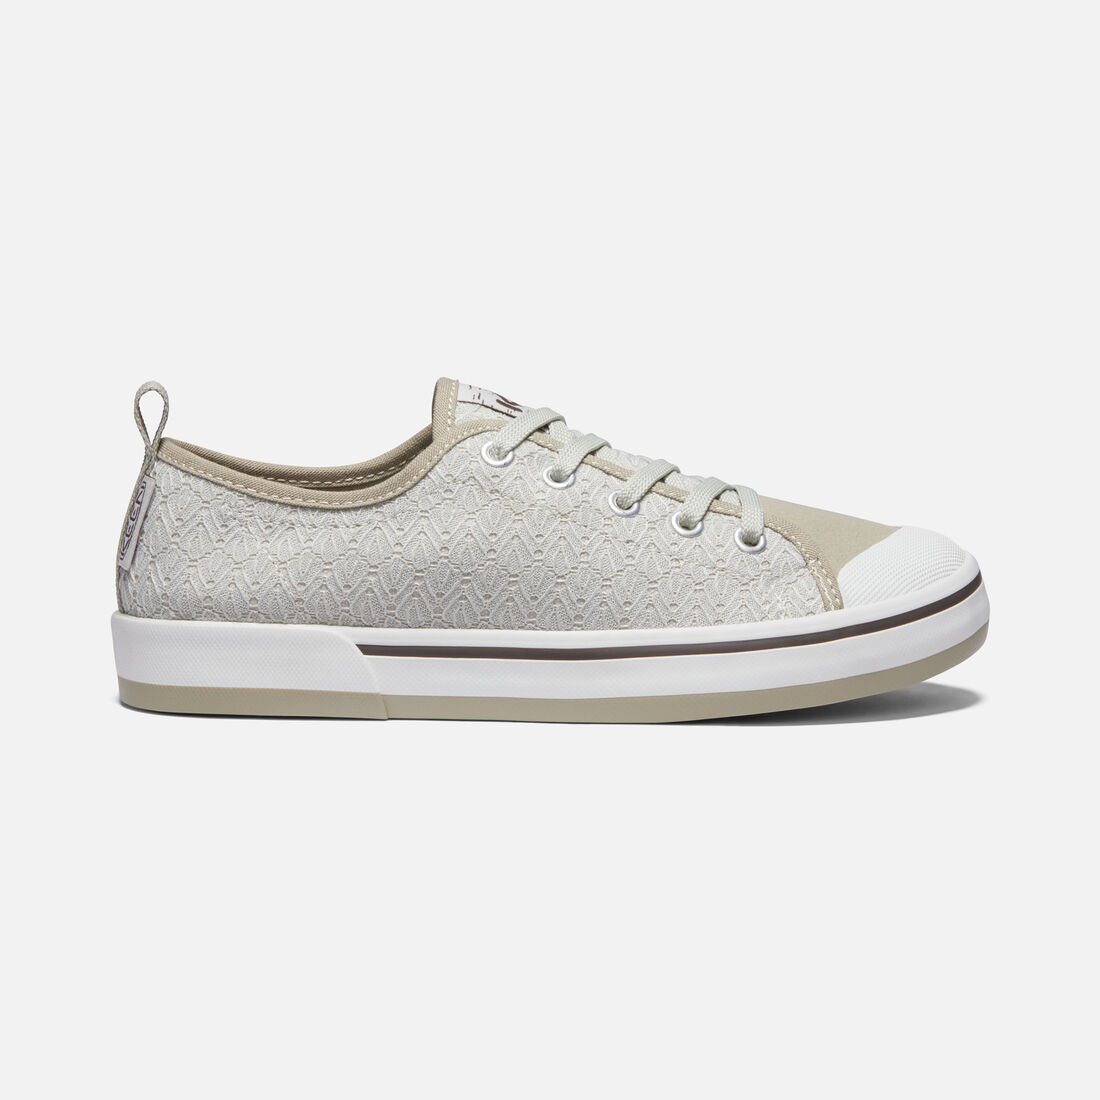 Women's ELSA II CROCHET SNEAKER in SILVER BIRCH/CANTEEN - large view.